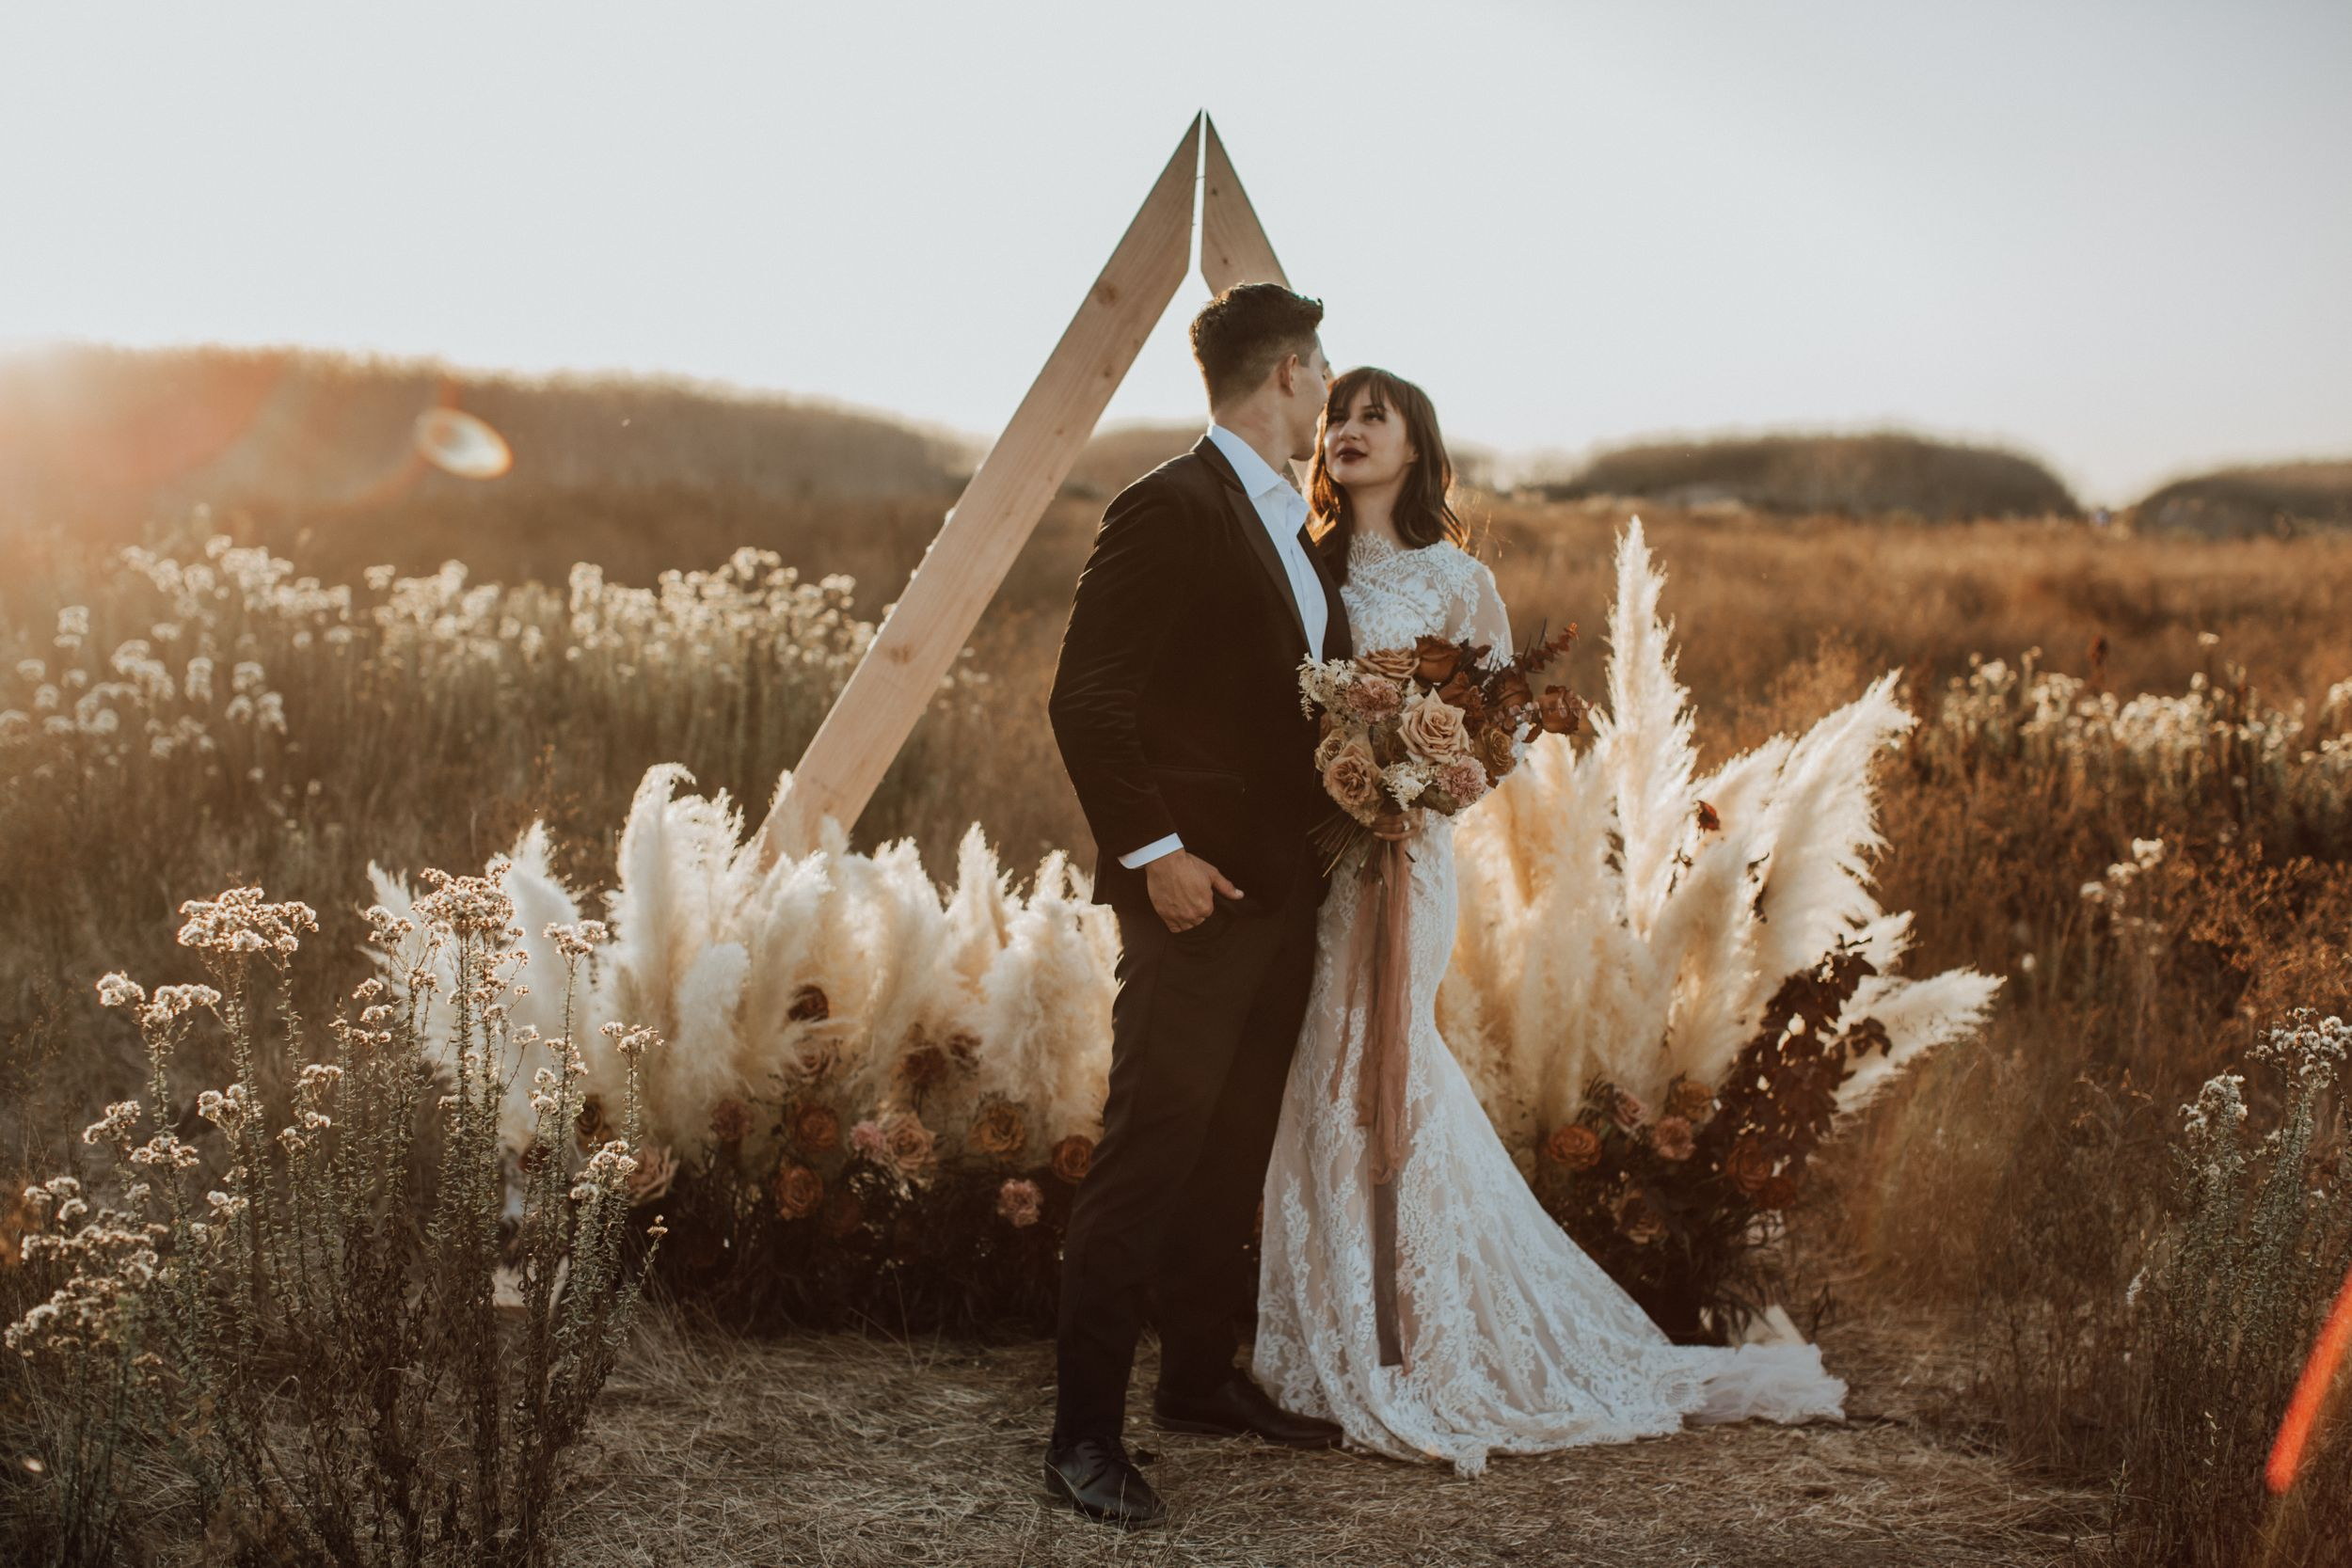 Boho Costa Mesa California elopement wedding photography